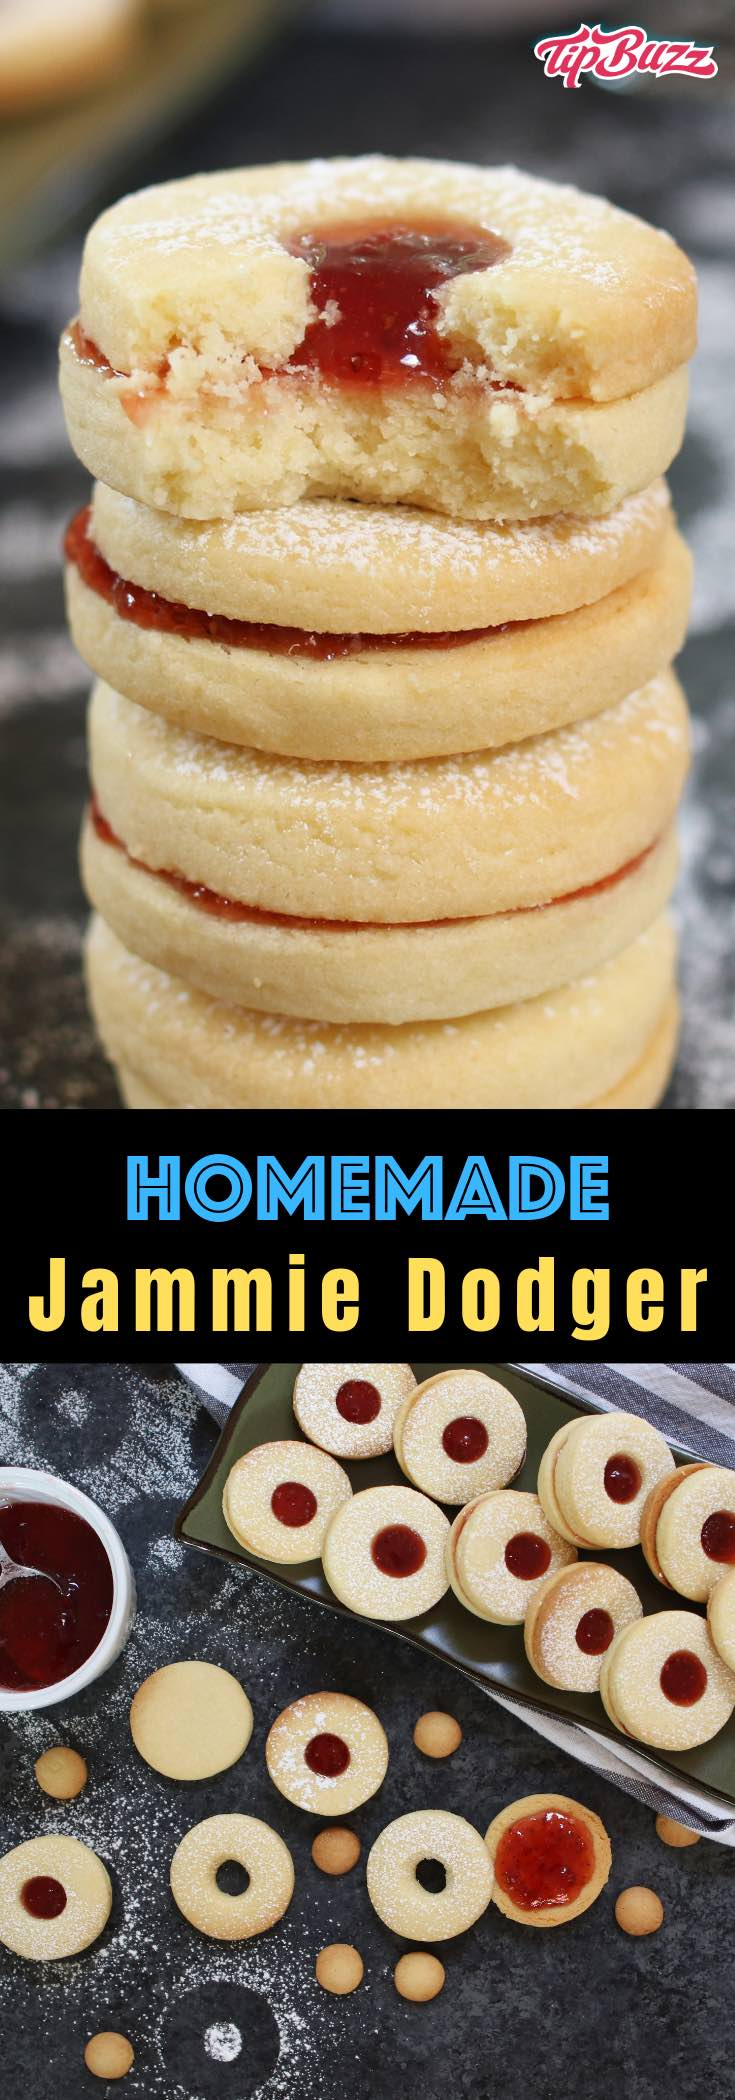 These soft and buttery homemade Jammie Dodgers are a UK staple! They are two shortbread biscuits sandwiched together with fruity jam such as strawberry or raspberry. I've packed all my tips in this post so that you can make them easily at home!